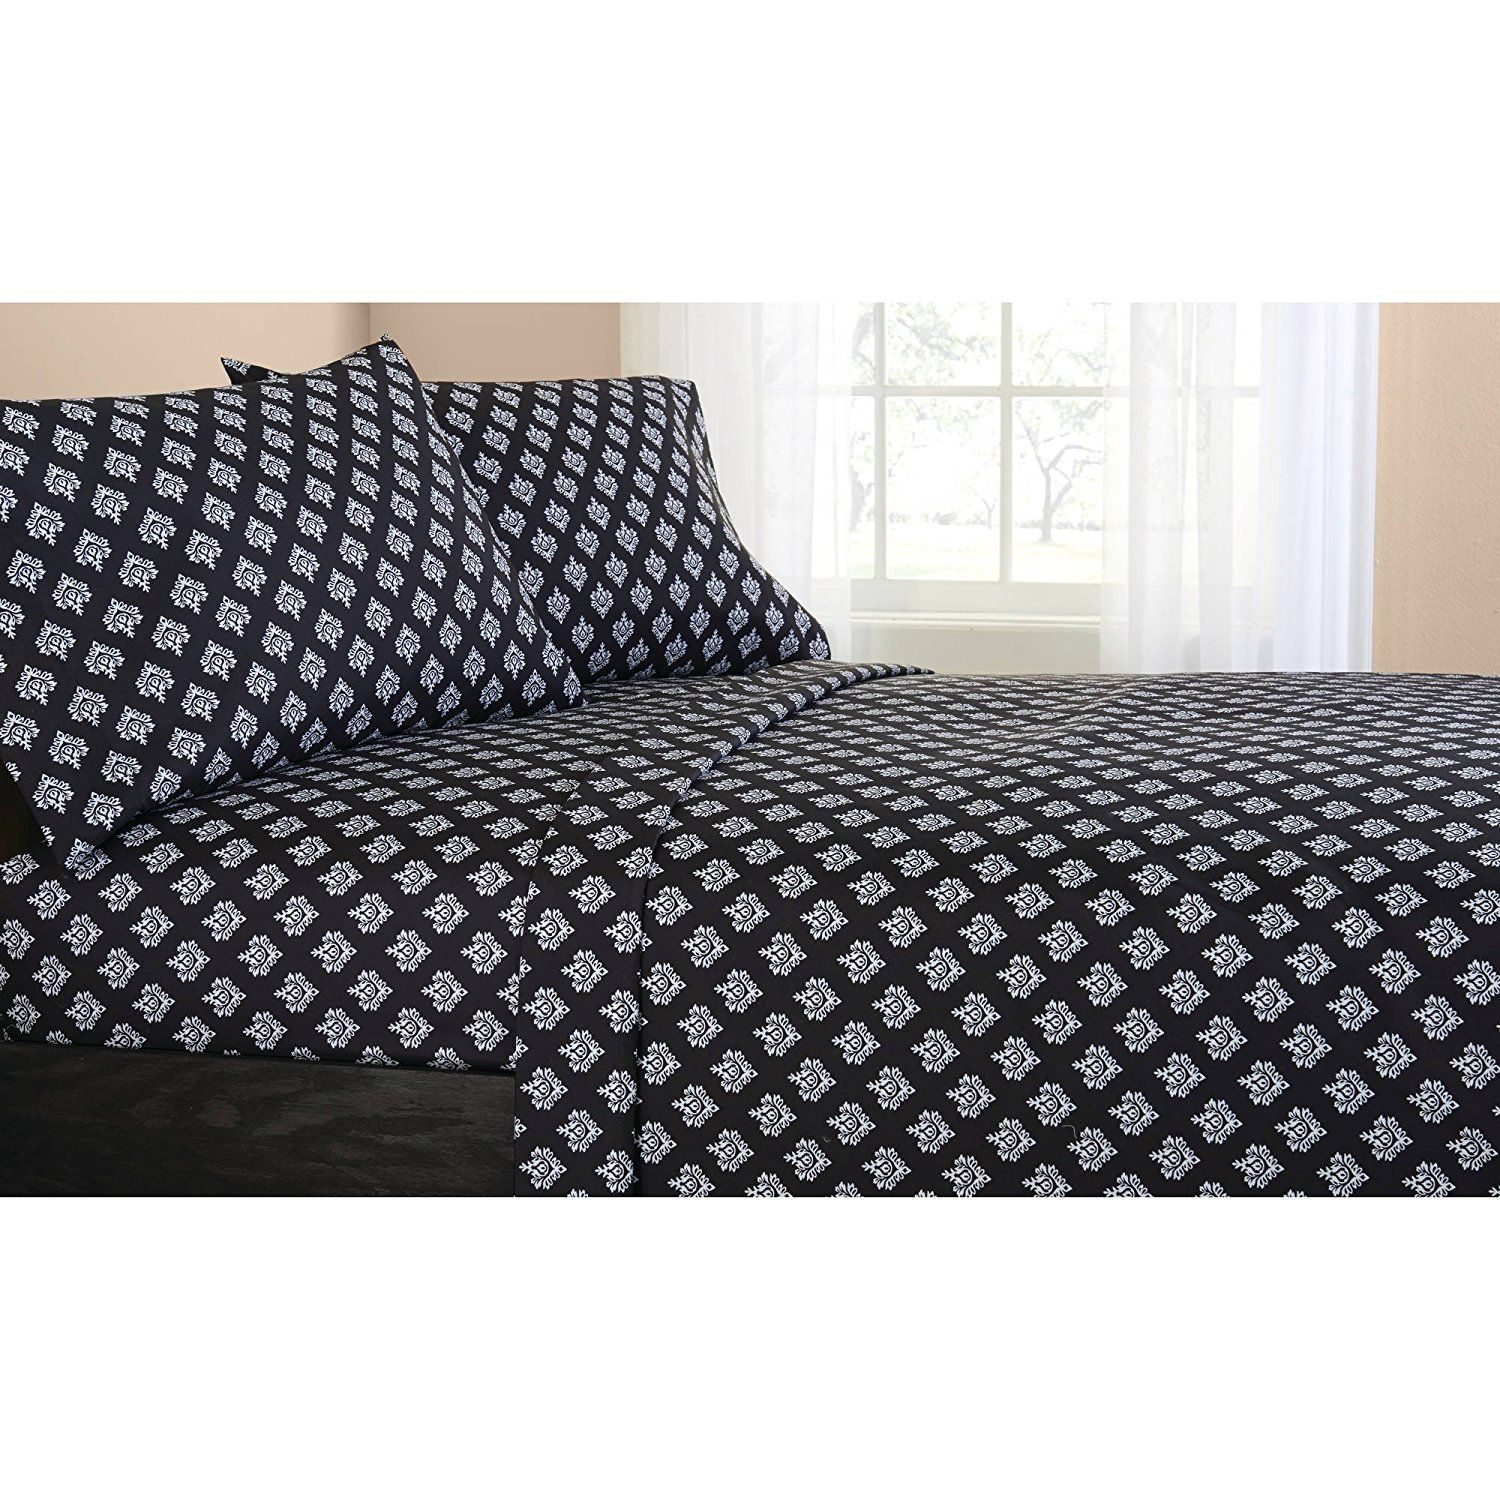 Mainstays Classic Noir Bed In A Bag Bedding Set, FULL   Furniture ...